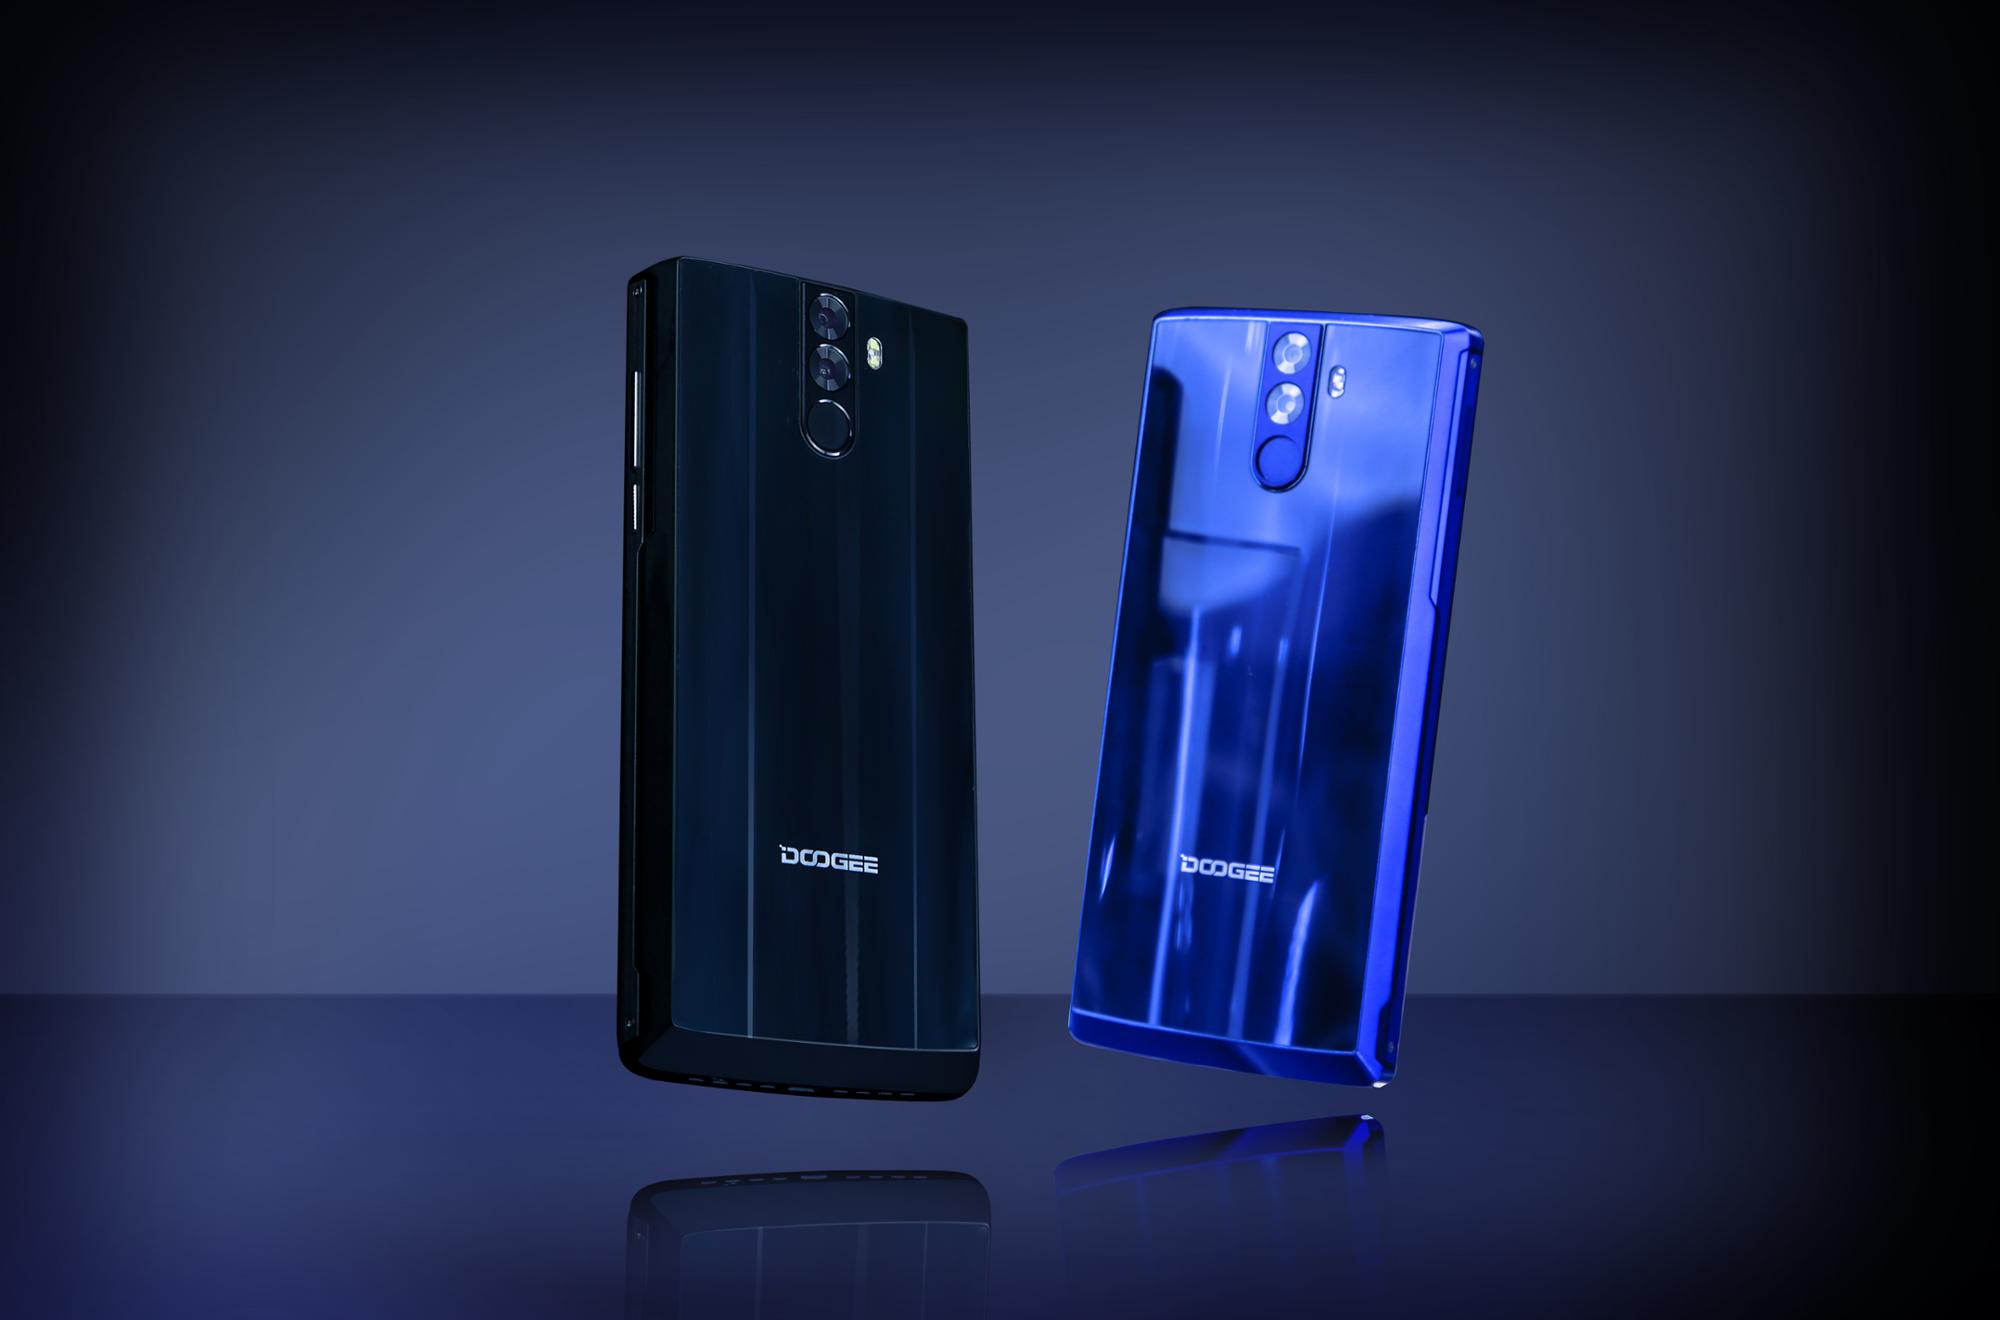 6Inch Screen Doogee BL12000 4GB RAM 16.0+13.0MP Rear Camera 16.0+8.0MP Front Camera B20 Band Multi-language Black Blue